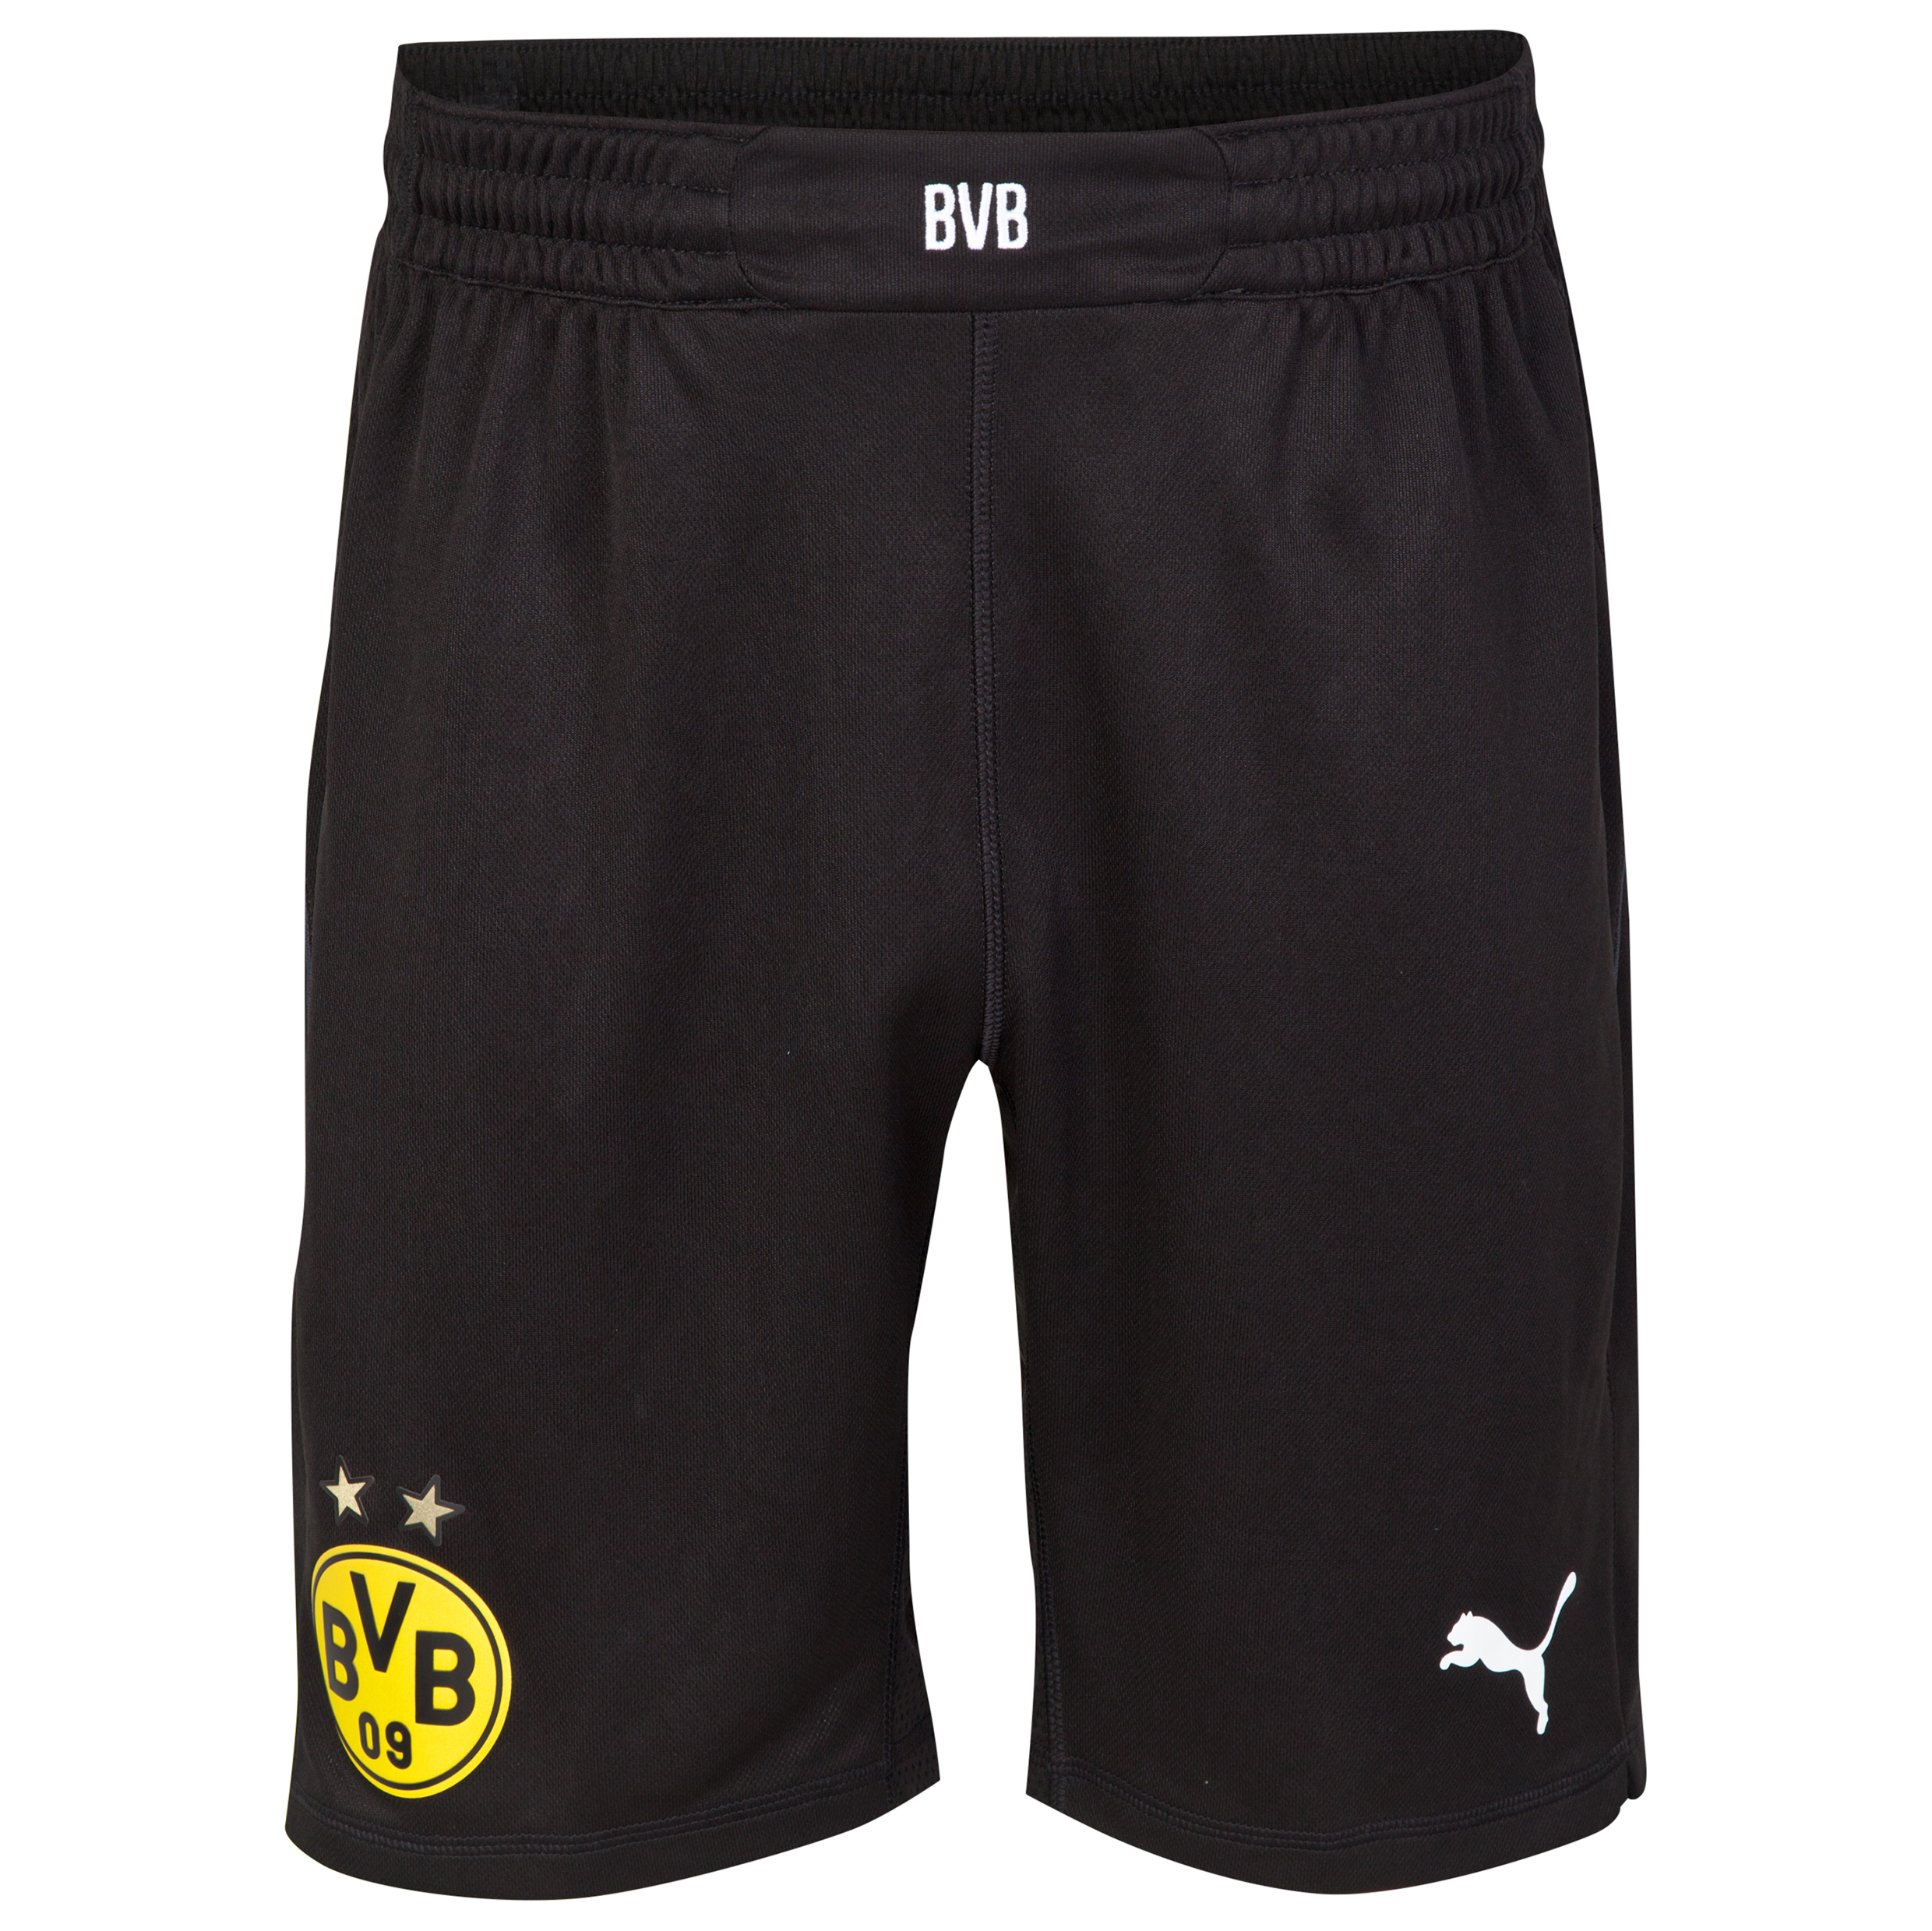 BVB Home Goalkeeper Shorts 2014/15 - Kids